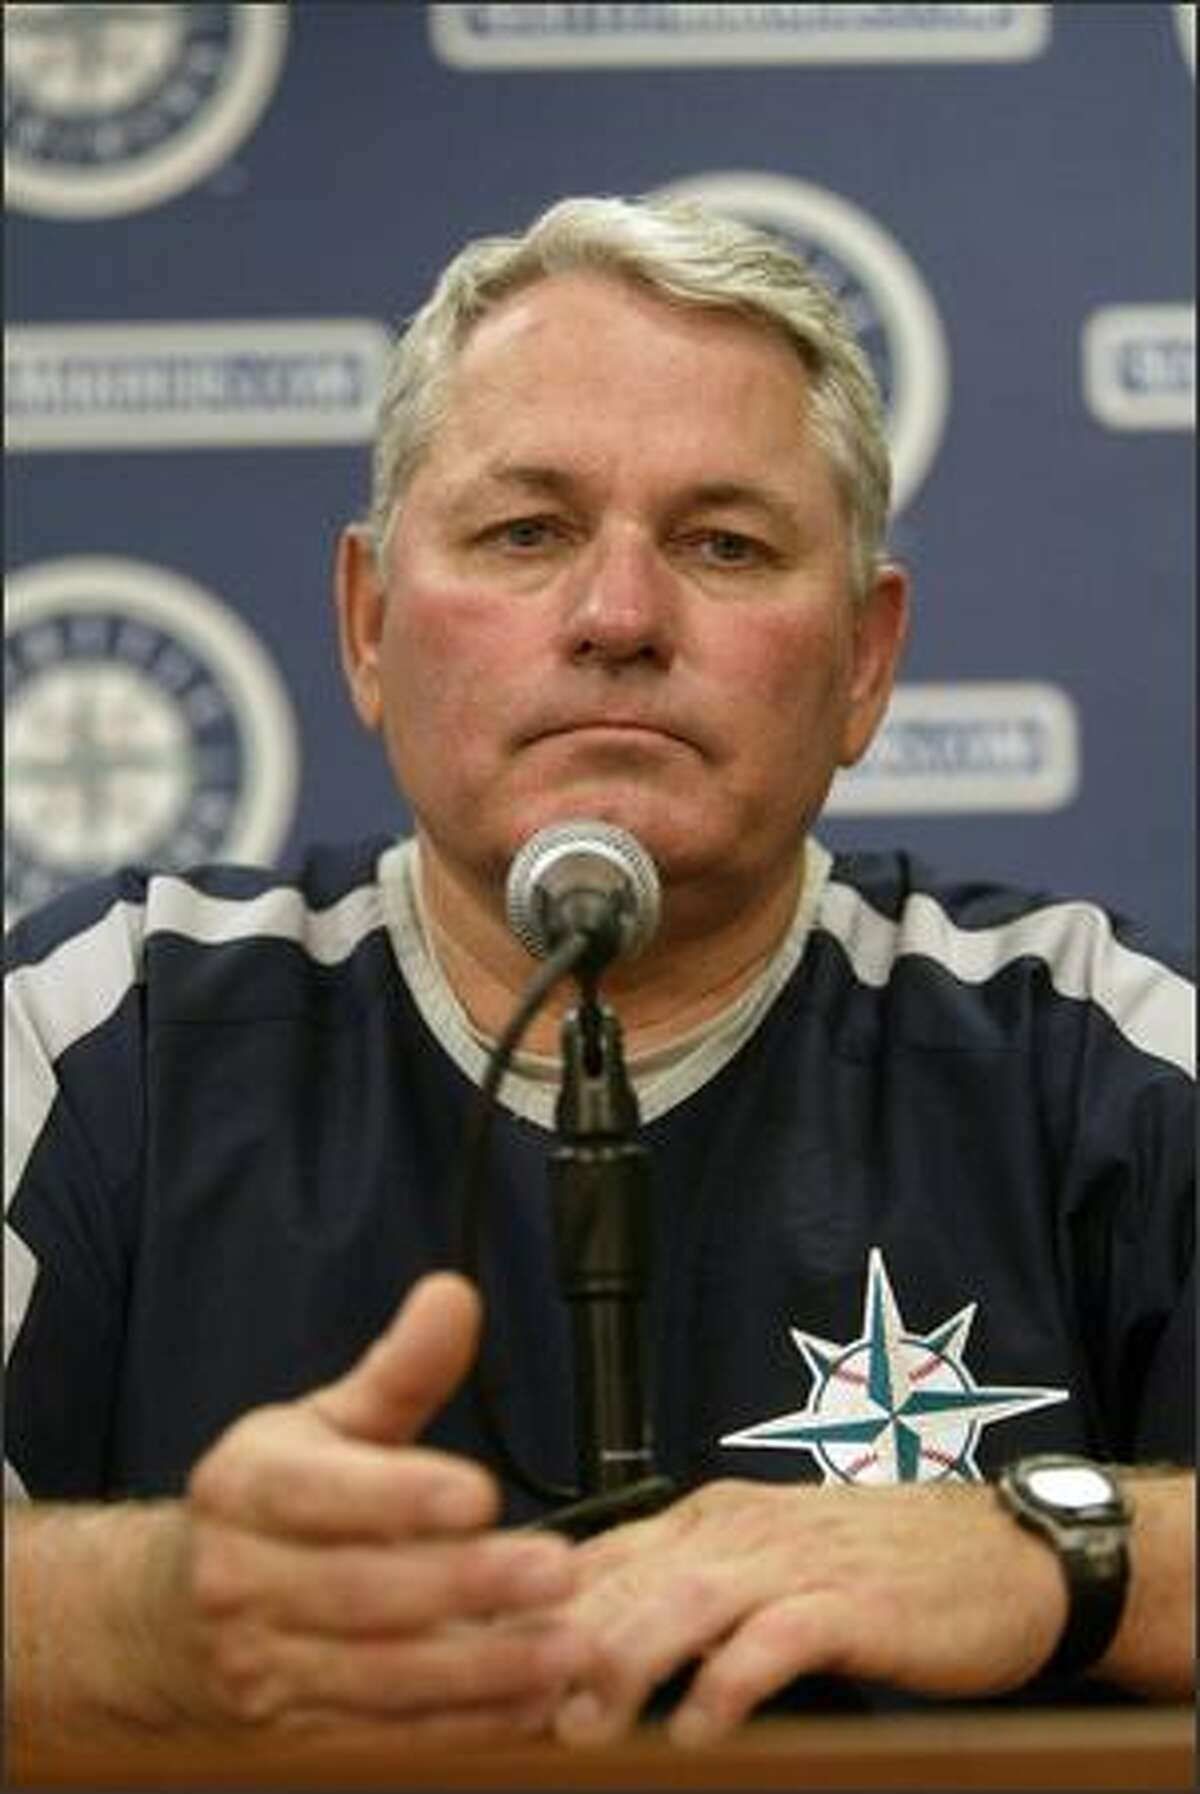 Mike Hargrove discusses his reasons for resigning as manager of the Mariners during a press conference before Sunday's game, his last at the club's helm.